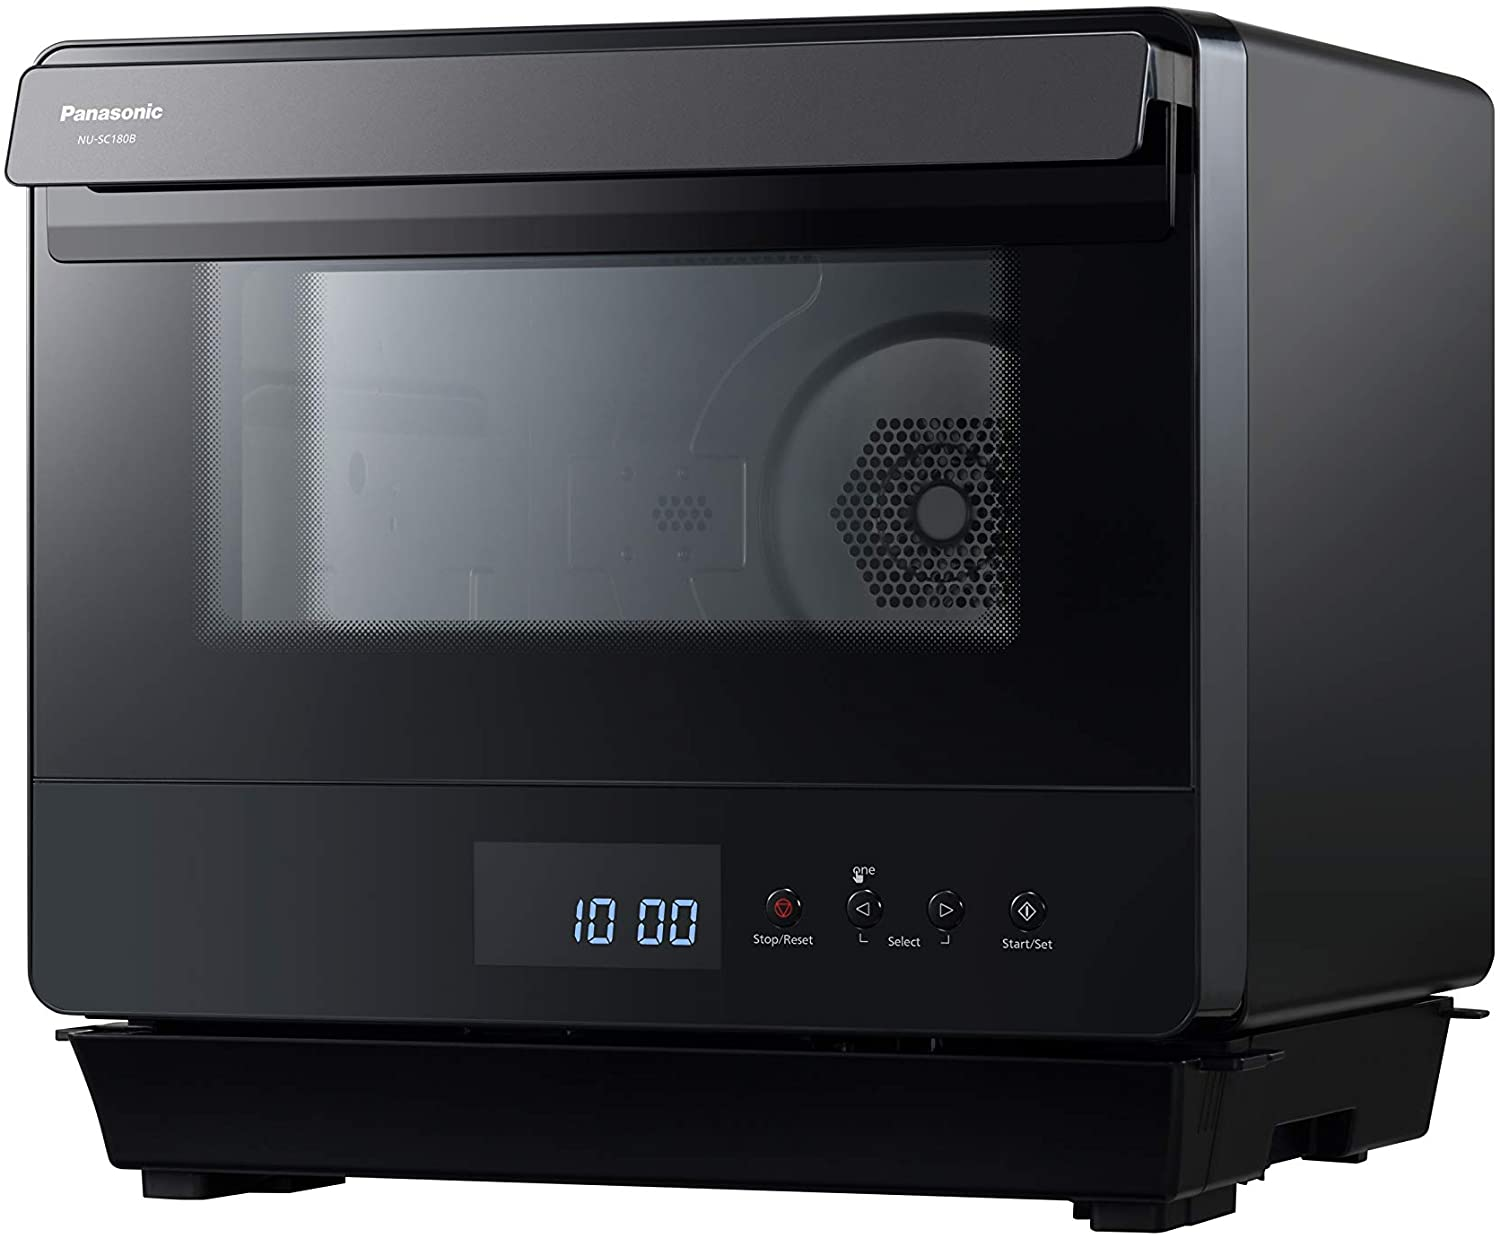 Panasonic NU-SC180BYPQ Steam Oven is Best ovens Singapore: top 13 ovens for baking, roasting and grilling, What is the best toaster oven out there?, What is the best small toaster oven air fryer?, What is the best 4 slice toaster oven?, What are the best small ovens?